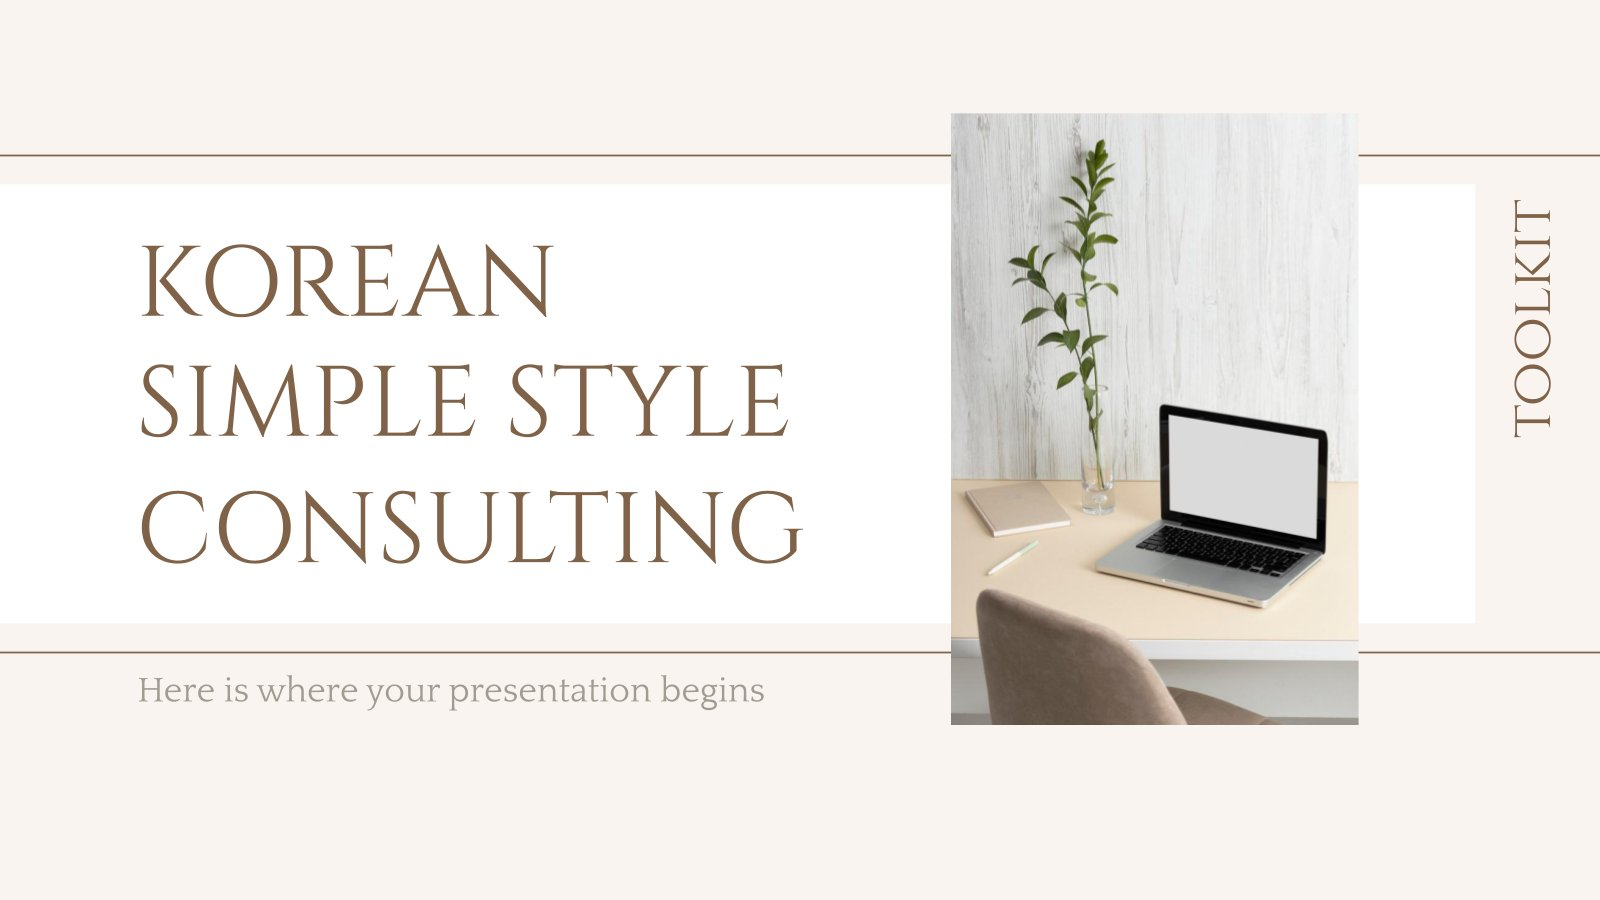 Korean Simple Style Consulting Toolkit presentation template